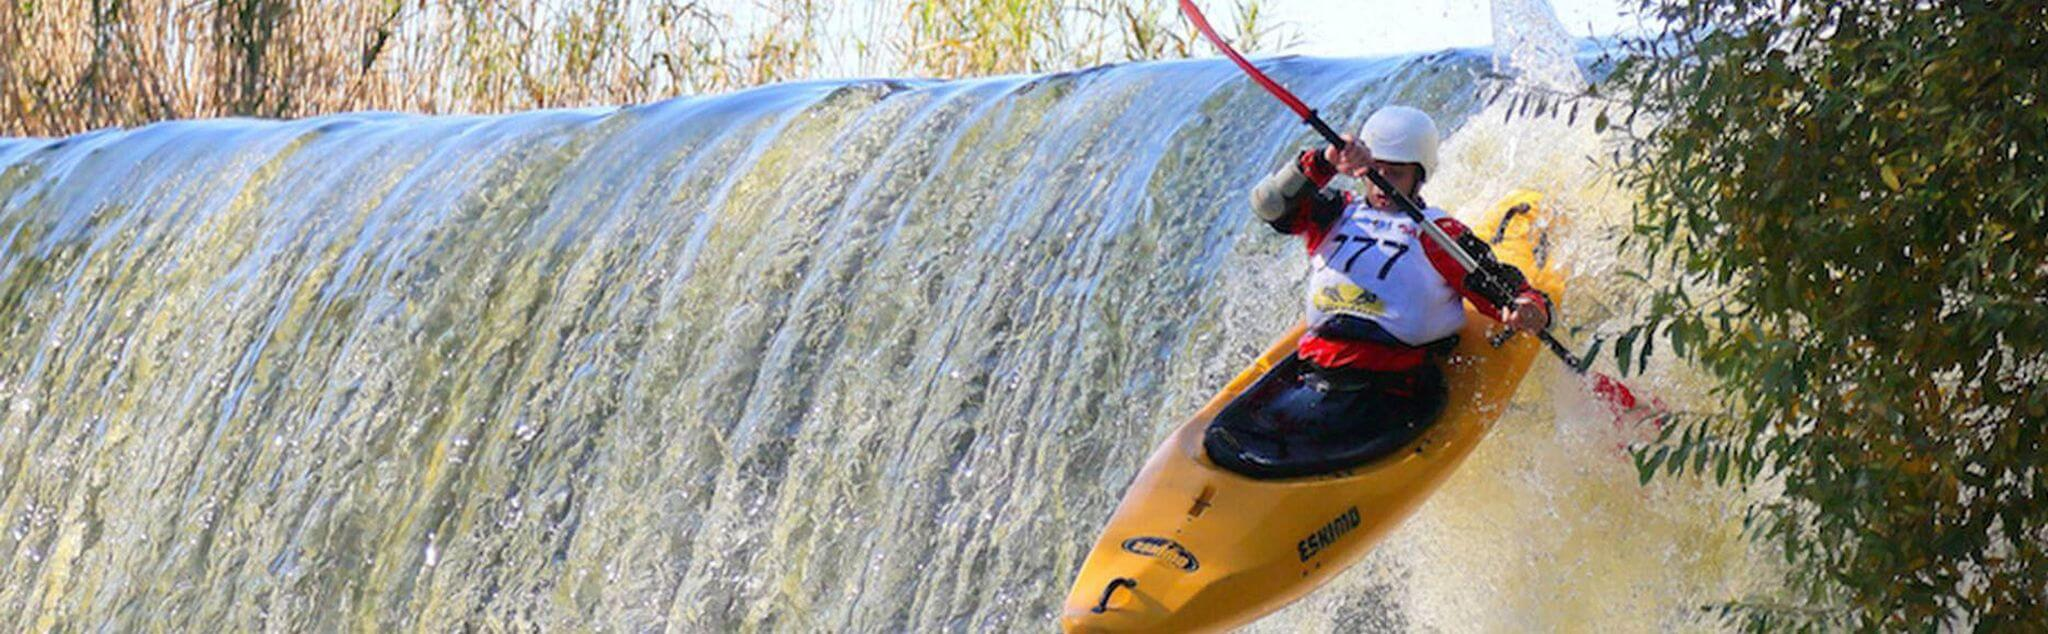 Kayaking in Albacete